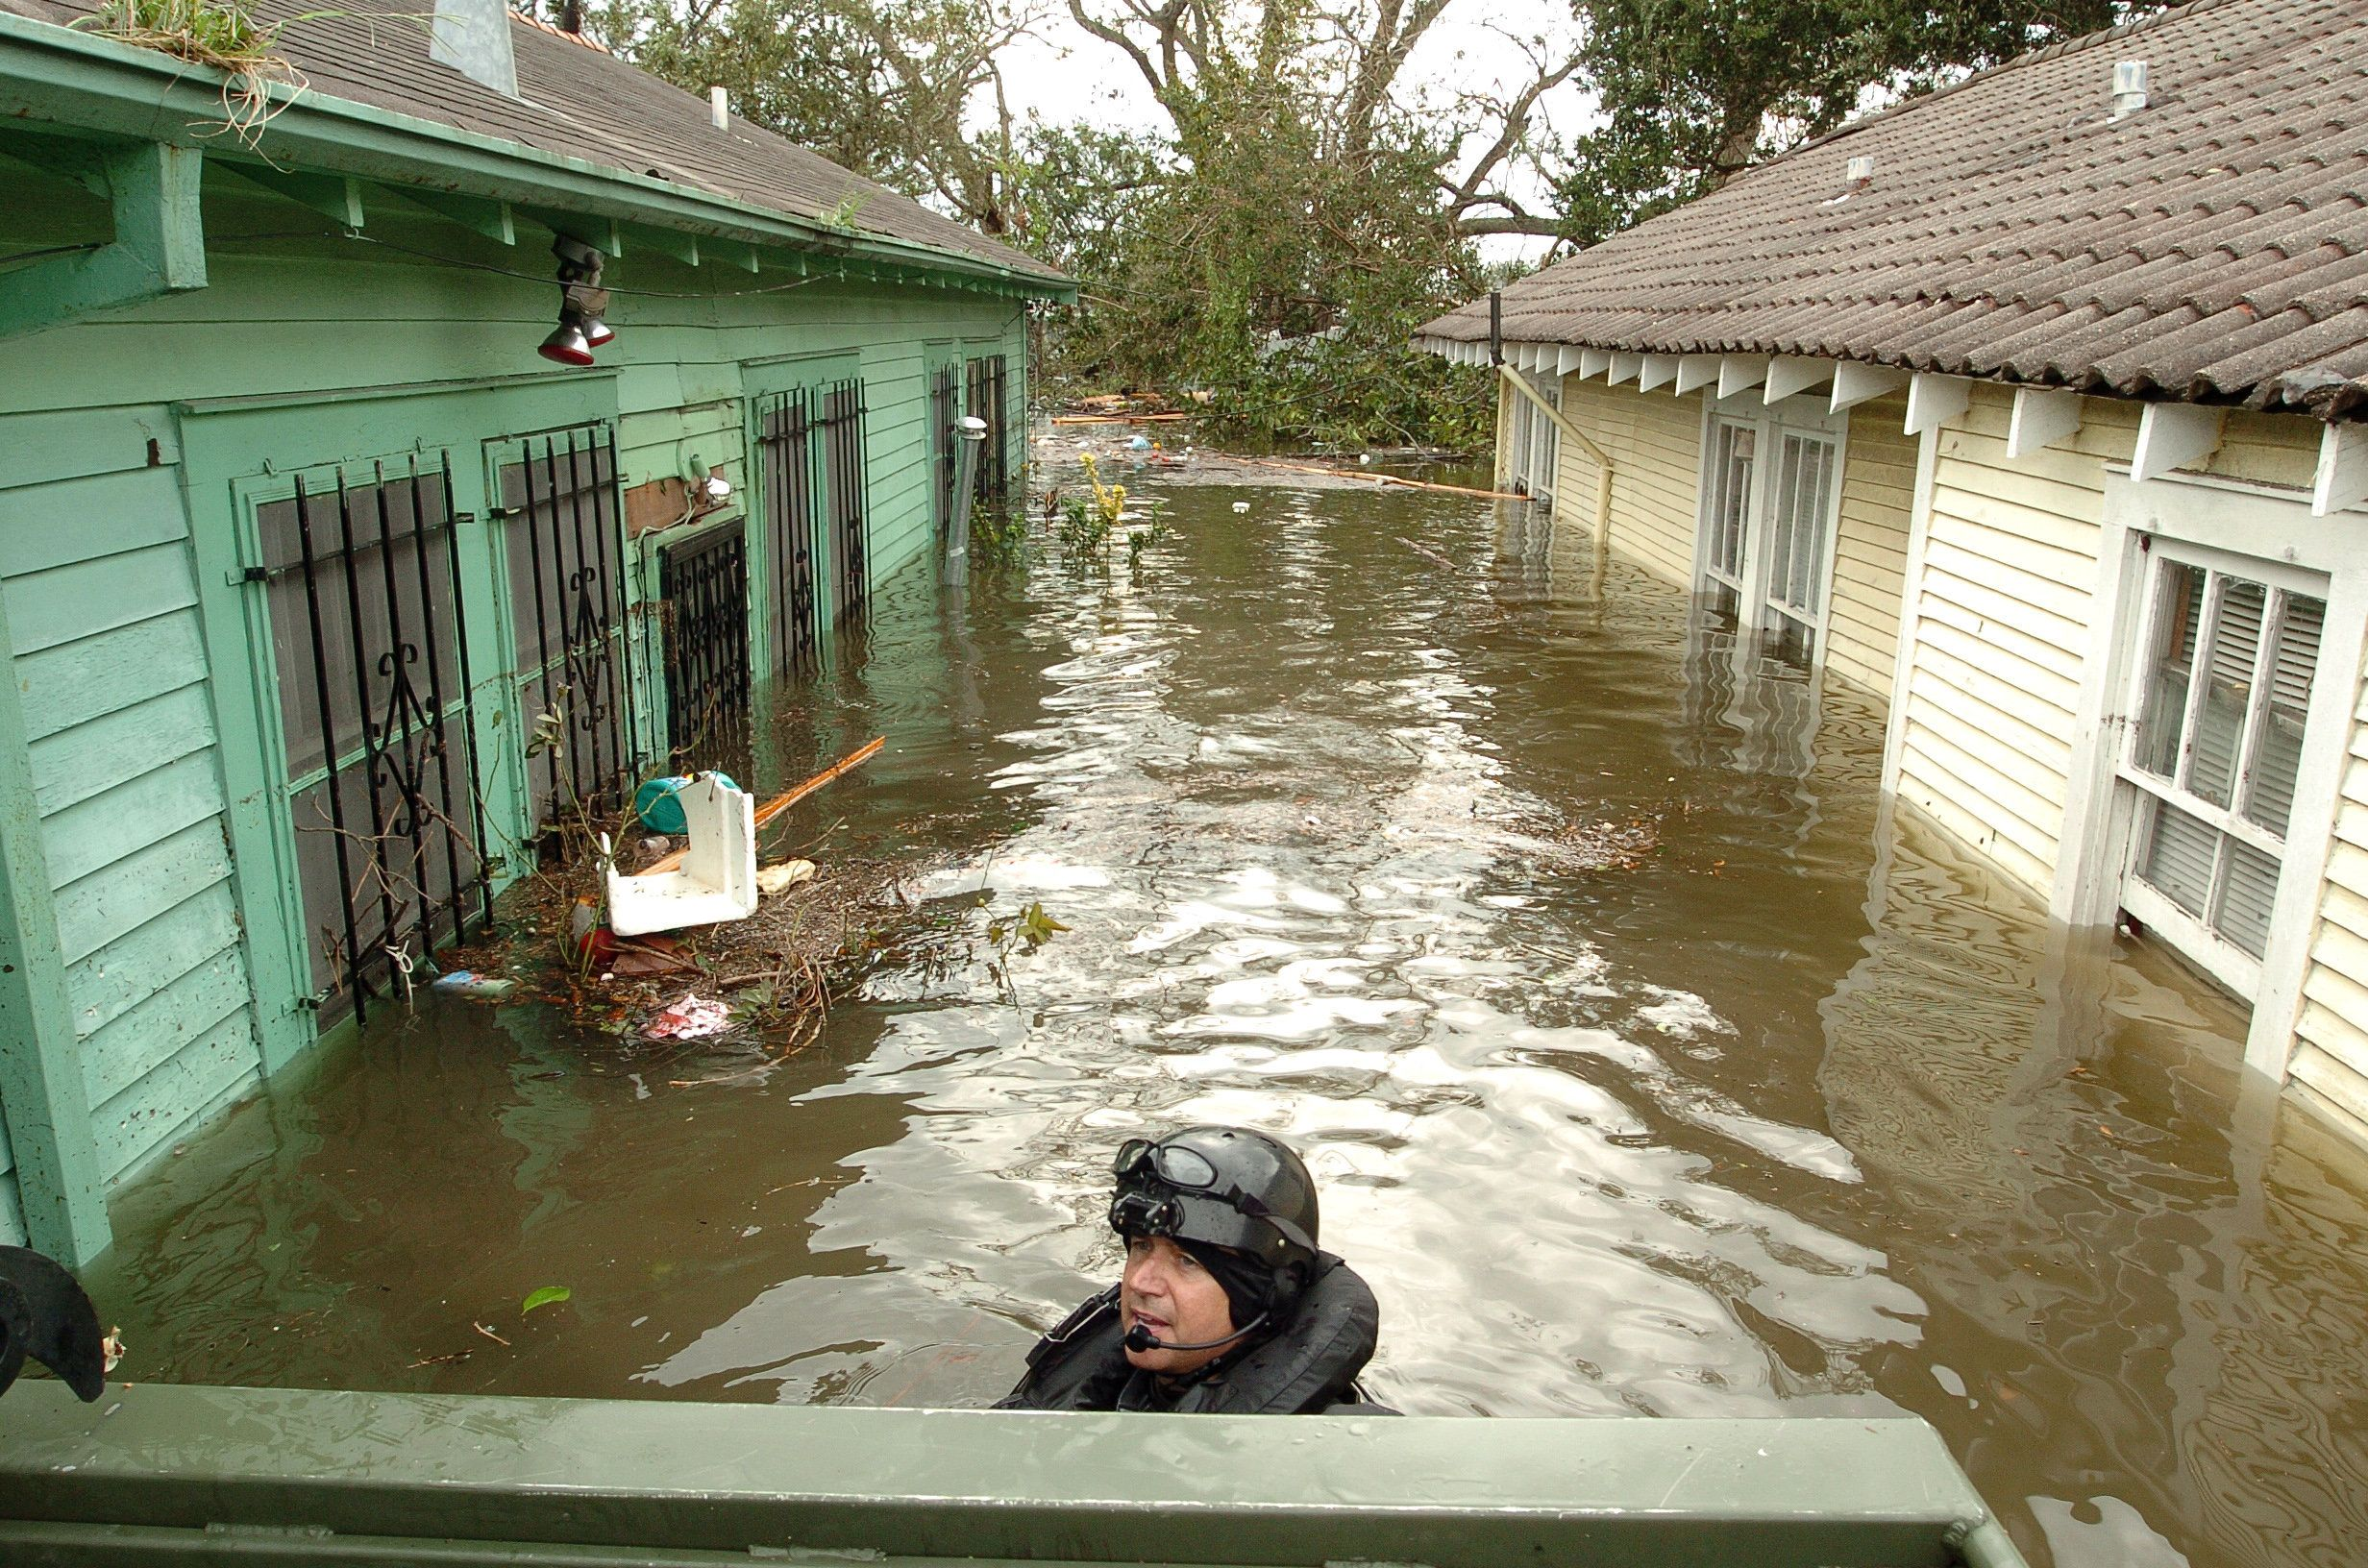 NEW ORLEANS - AUGUST 29: Swat police officer Cris Mandry navigates a rescue boat through a flooded alley looking for survivors in the Lower Ninth Ward in New Orleans, Louisiana on August 29, 2005. Hurricane Katrina slammed Louisiana as a category 4 storm, forcing levies to brake and flooding much of New Orleans. (Photo by Marko Georgiev/Getty Images)